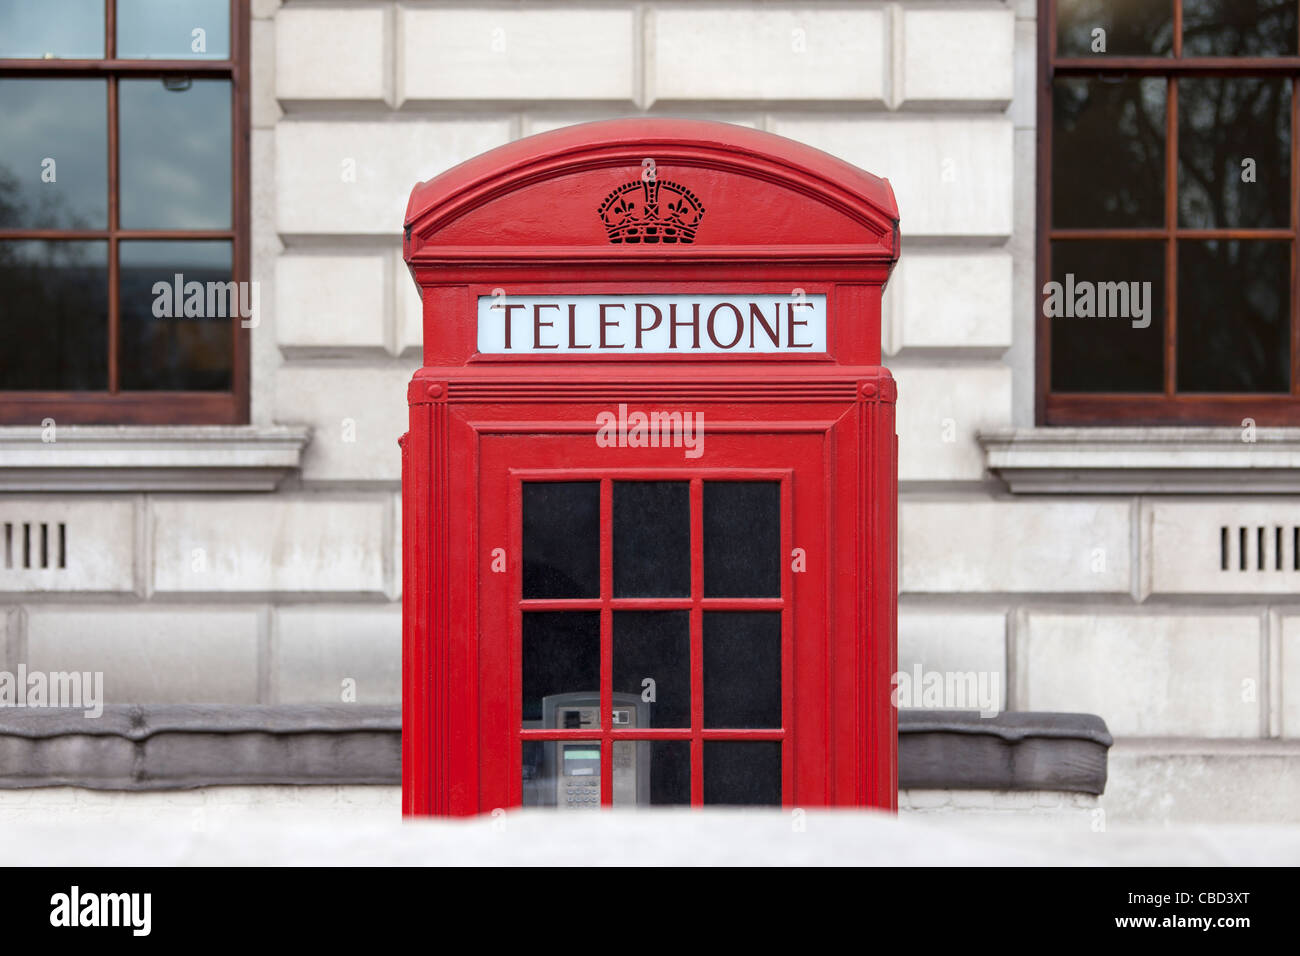 Red telephone box on city street - Stock Image